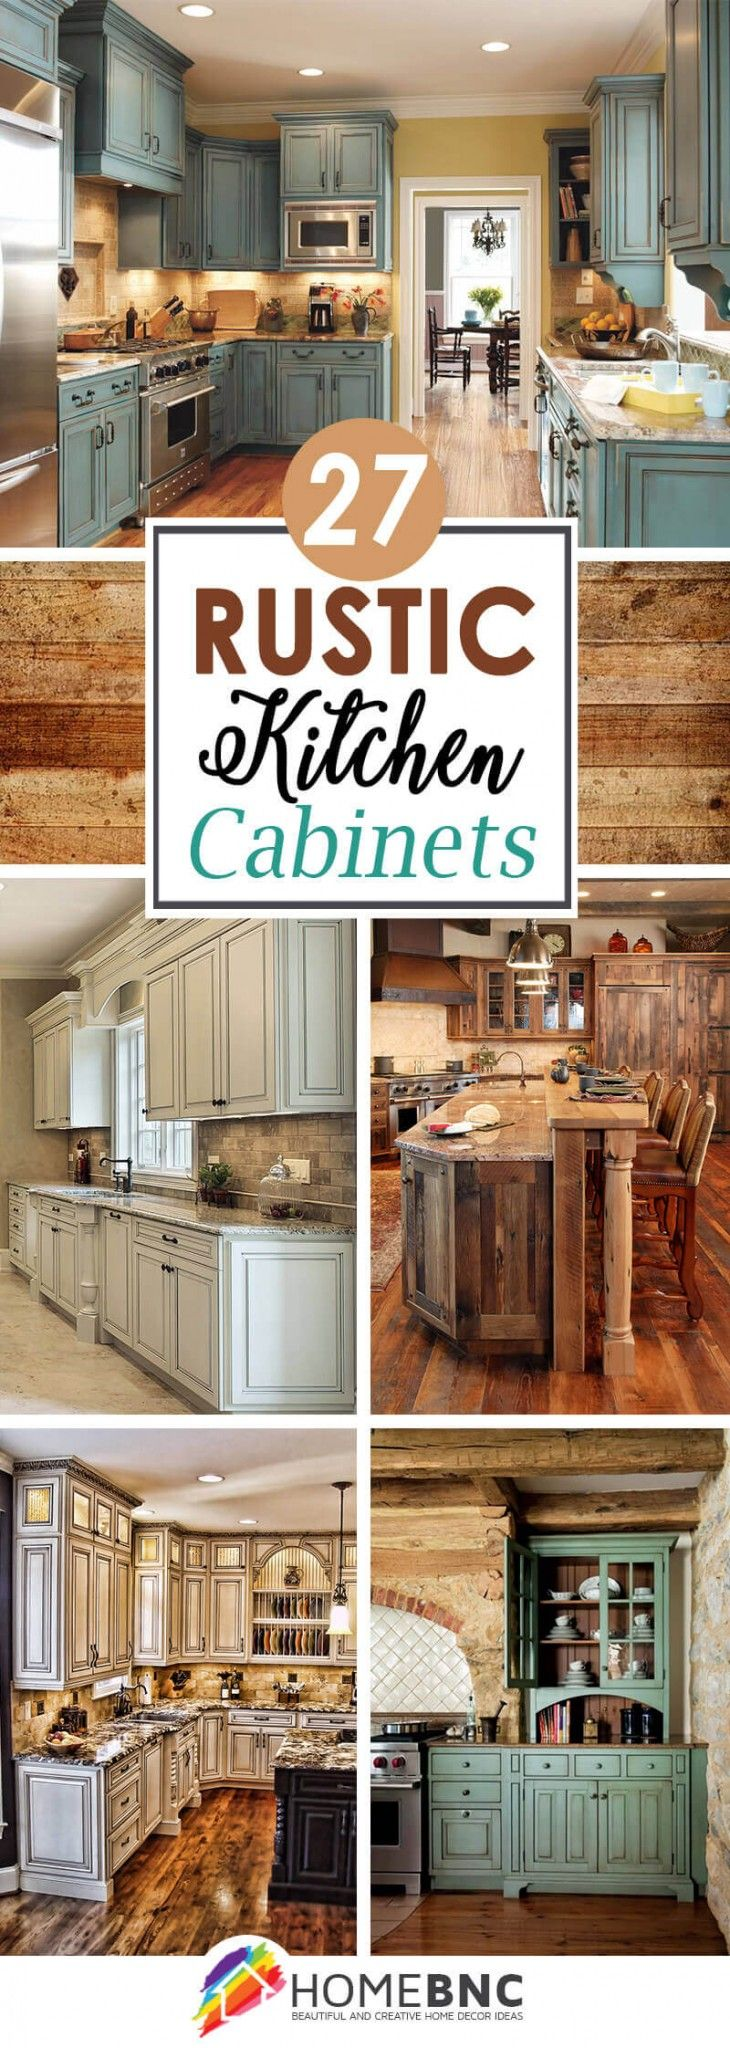 27 Cabinets For The Rustic Kitchen Of Your Dreams Rustic Kitchen Cabinets Rustic Kitchen Kitchen Remodel